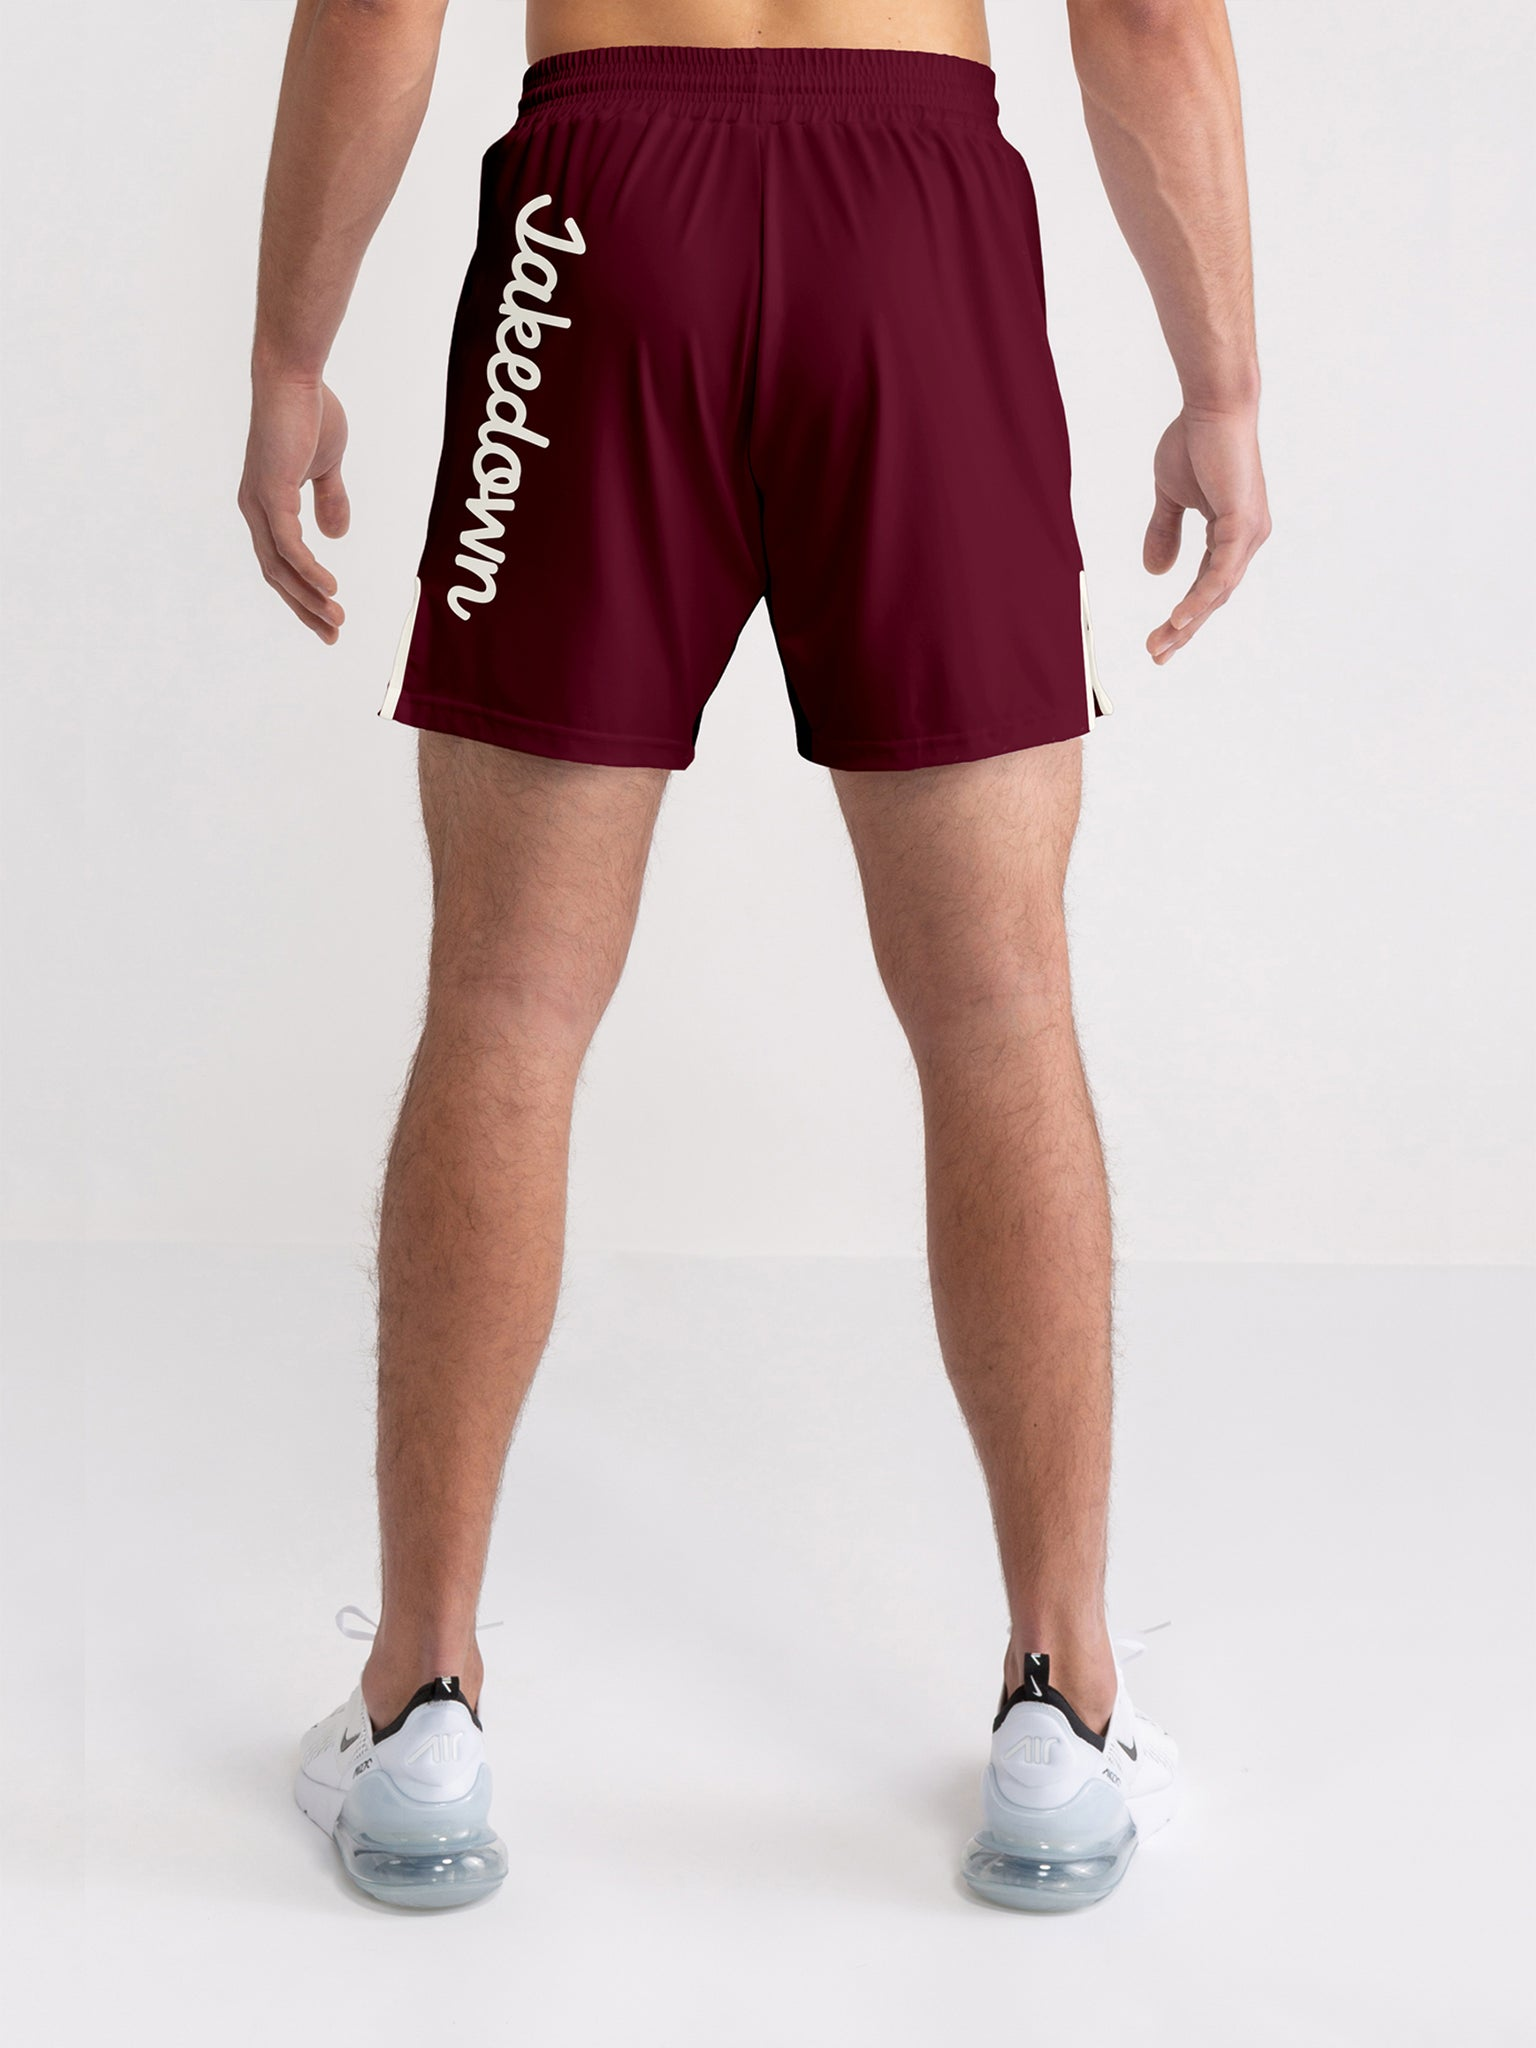 Ivy League Fight Shorts